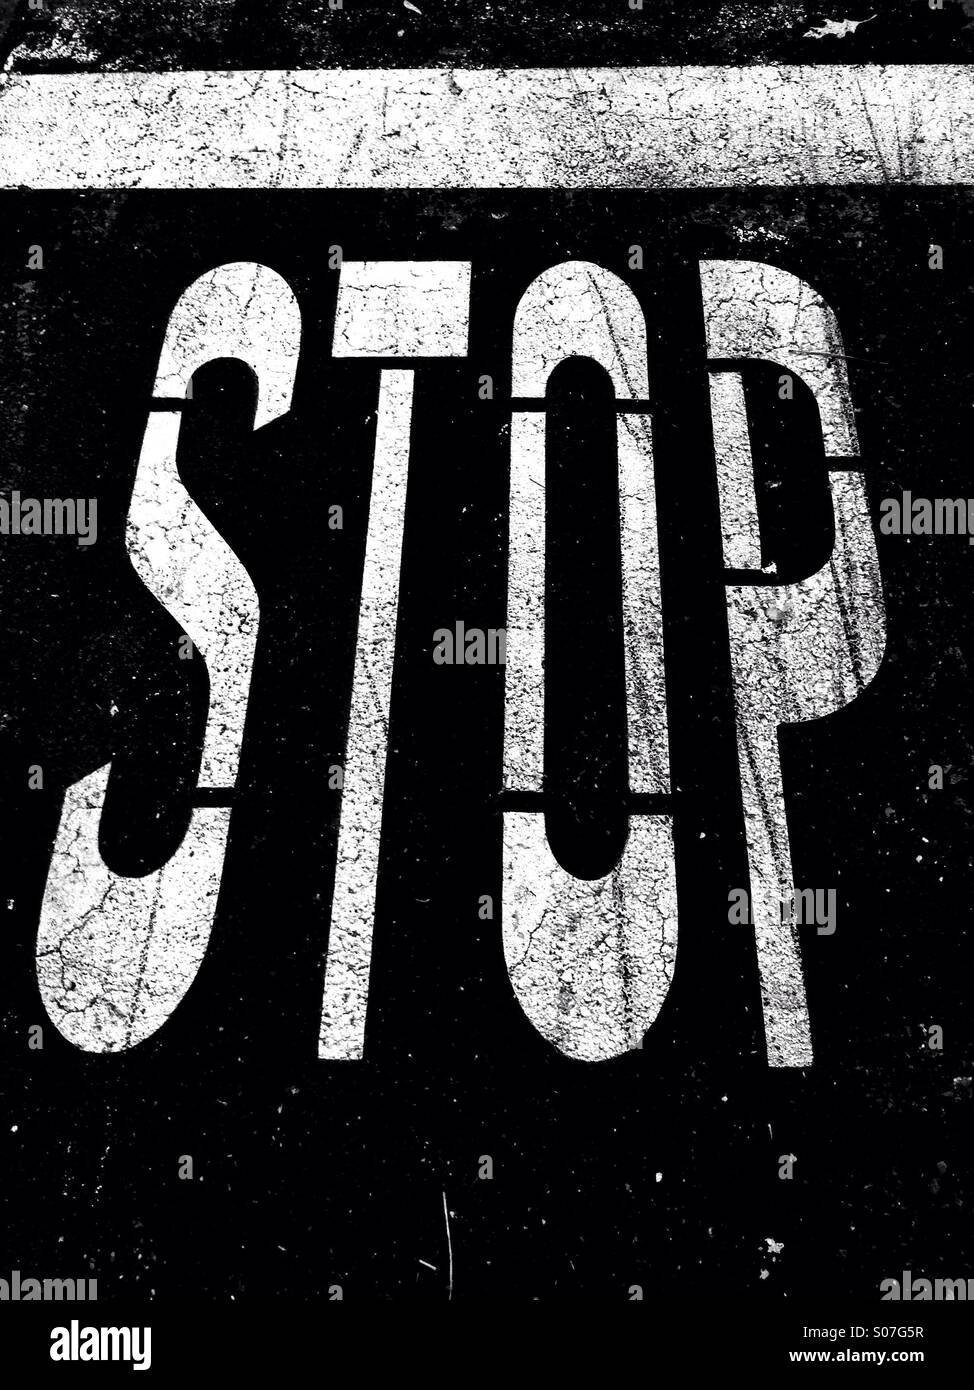 Stop sign on pavement in black and white - Stock Image